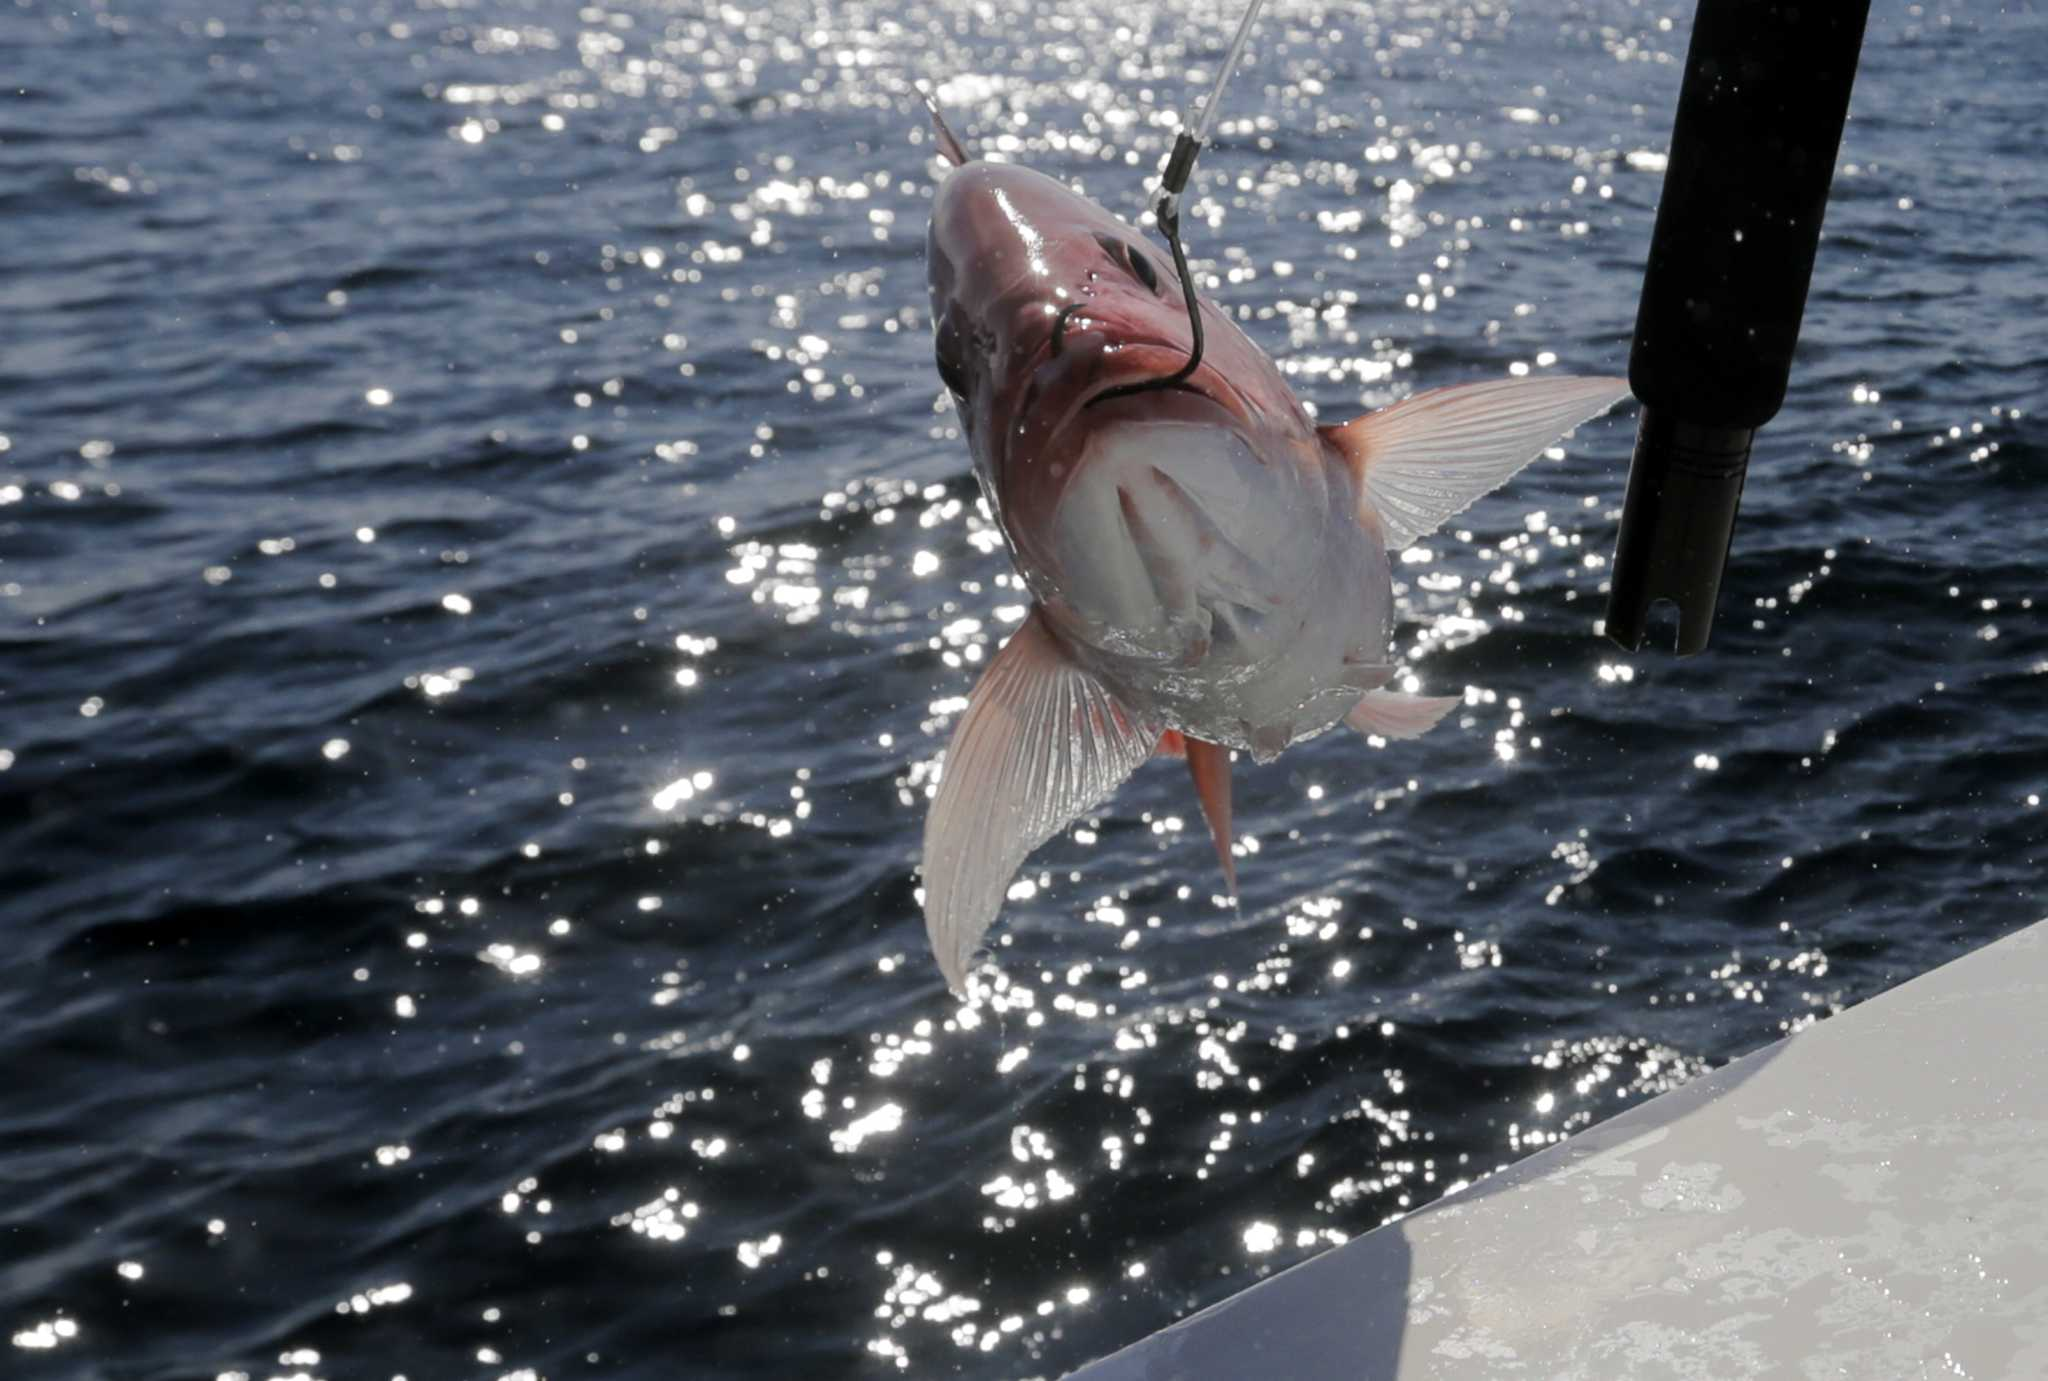 Freeport fisherman sent to prison for lying to agents about red snapper catch